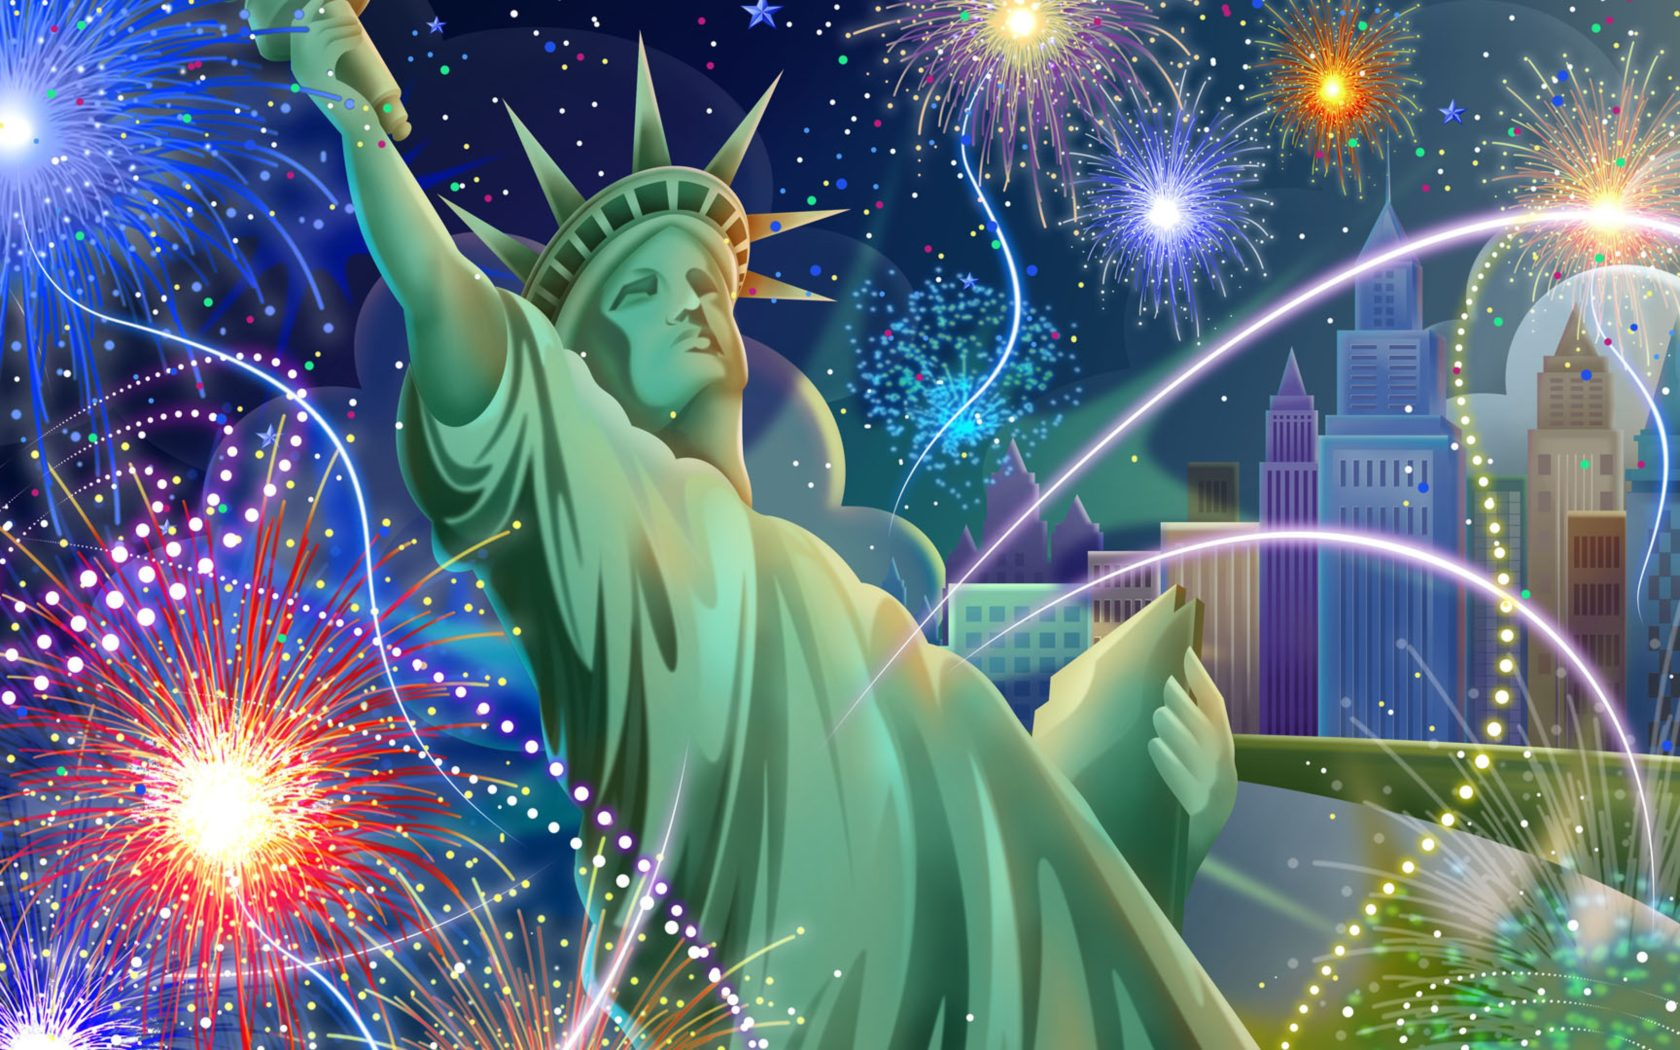 Colorful Wallpaper For Iphone X Statue Of Liberty July 4 Independence Day Celebration